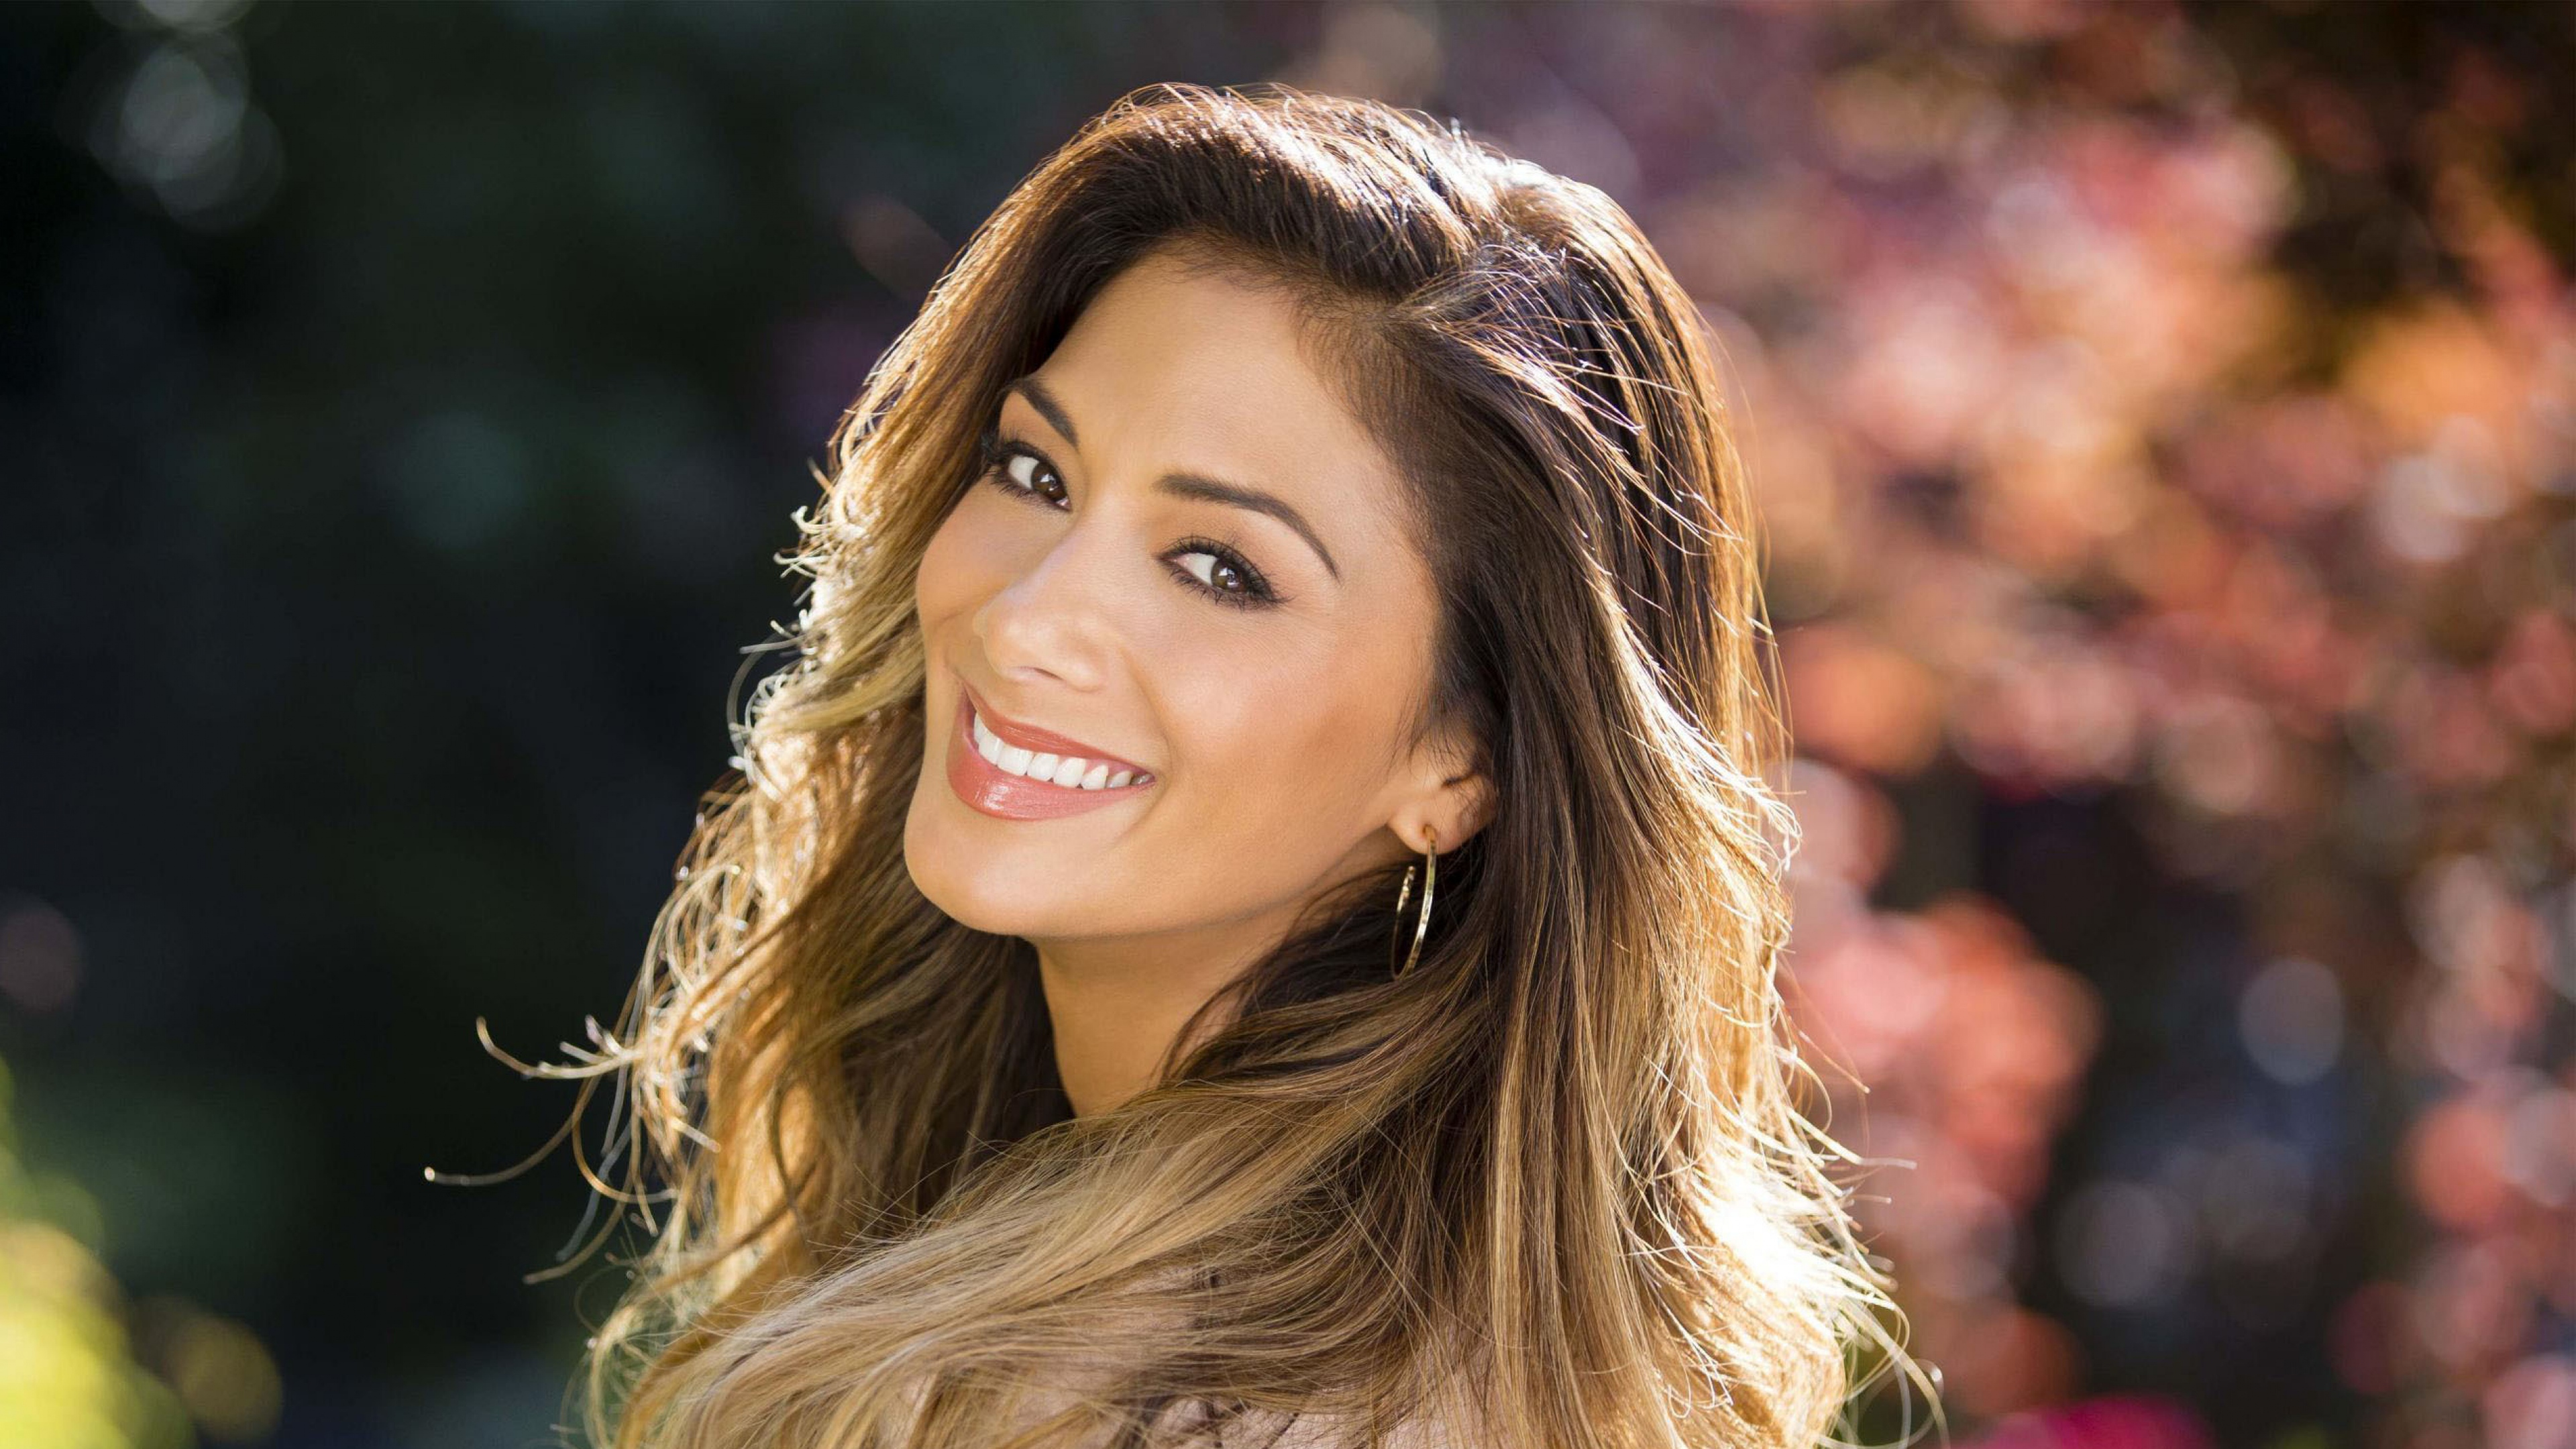 Nicole Scherzinger Wallpapers Images Photos Pictures - Ariana Grande Hairstyle